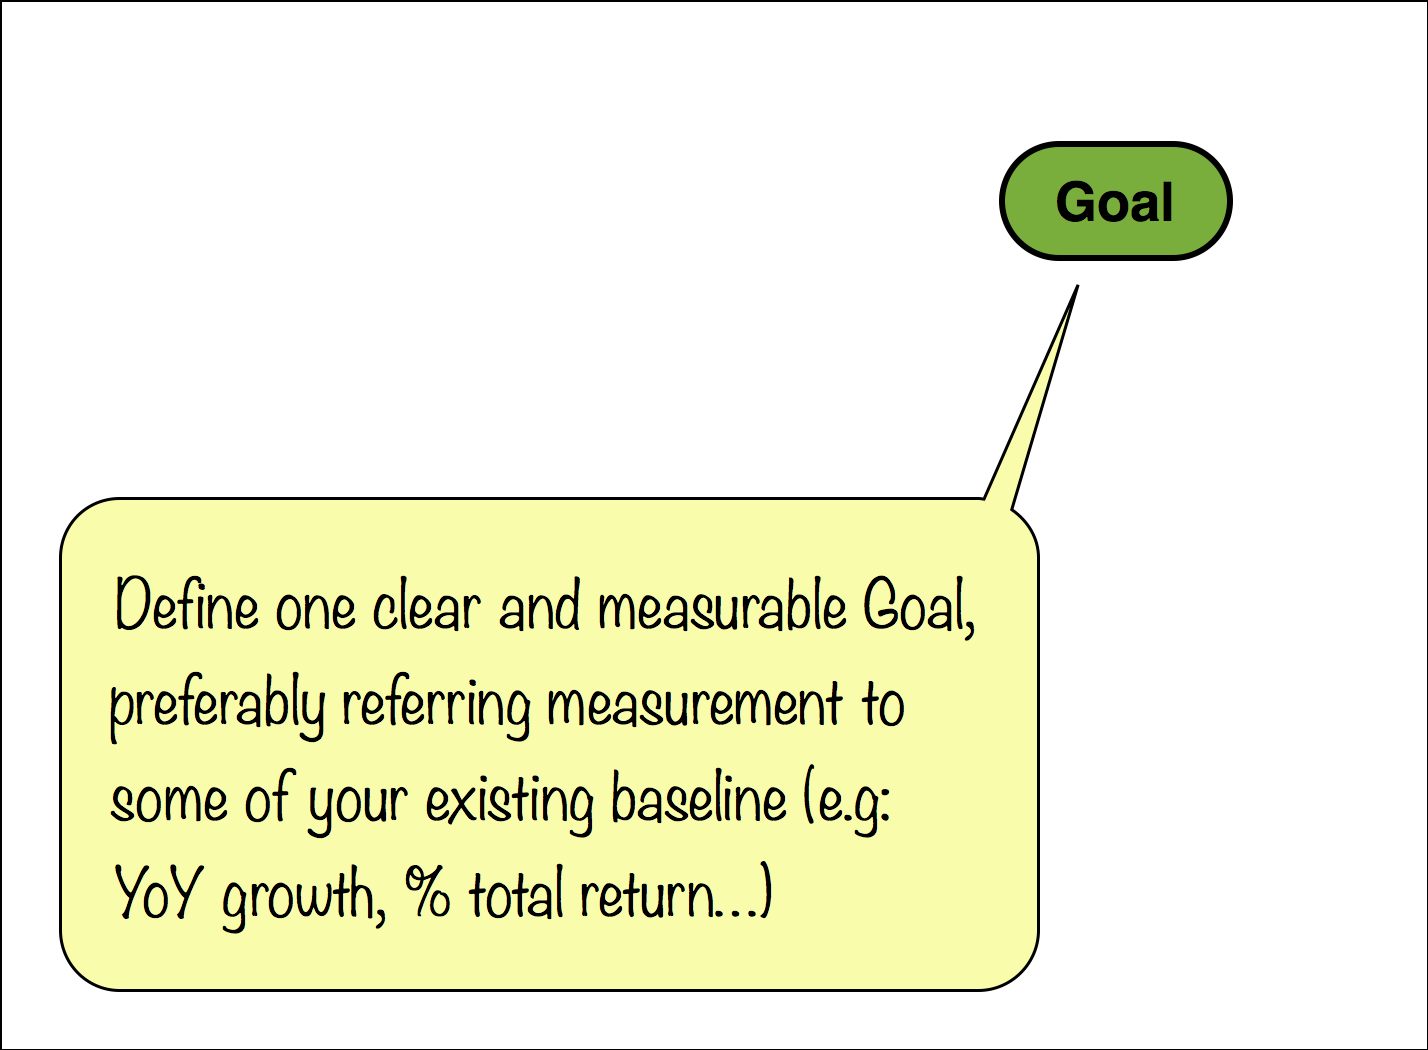 Define our clear and measurable Goal